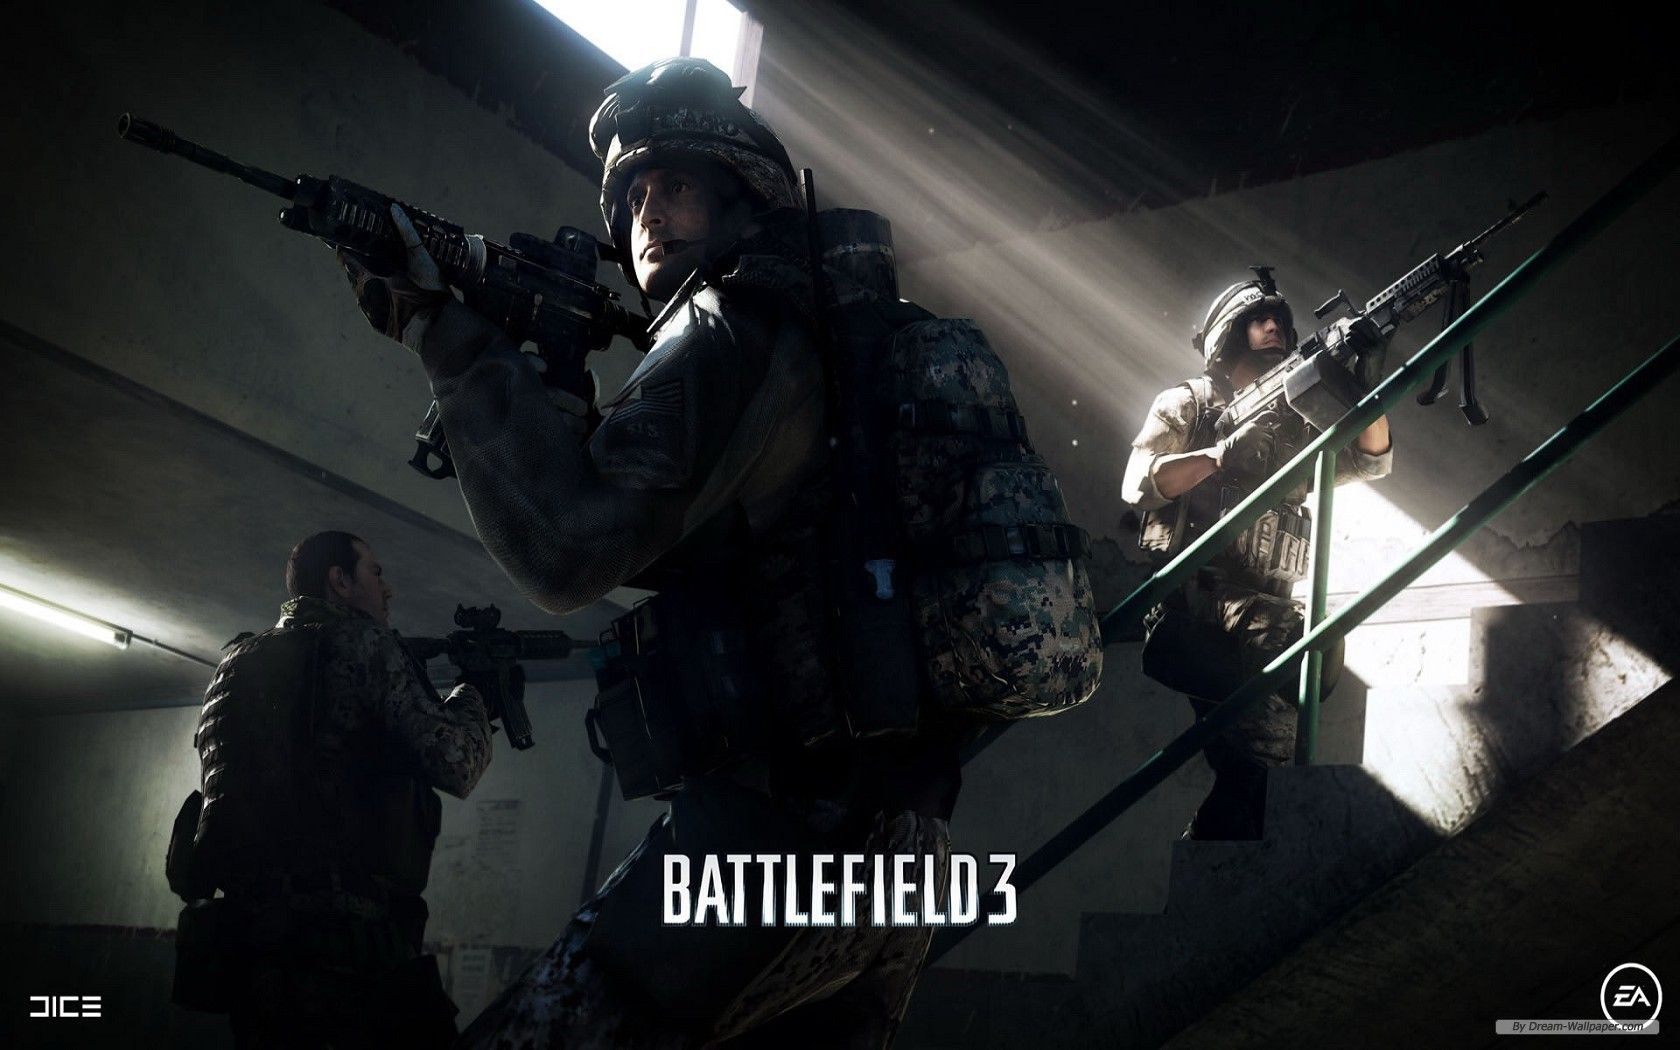 Battlefield 3 Battlefield 3 Battlefield Battlefield Games